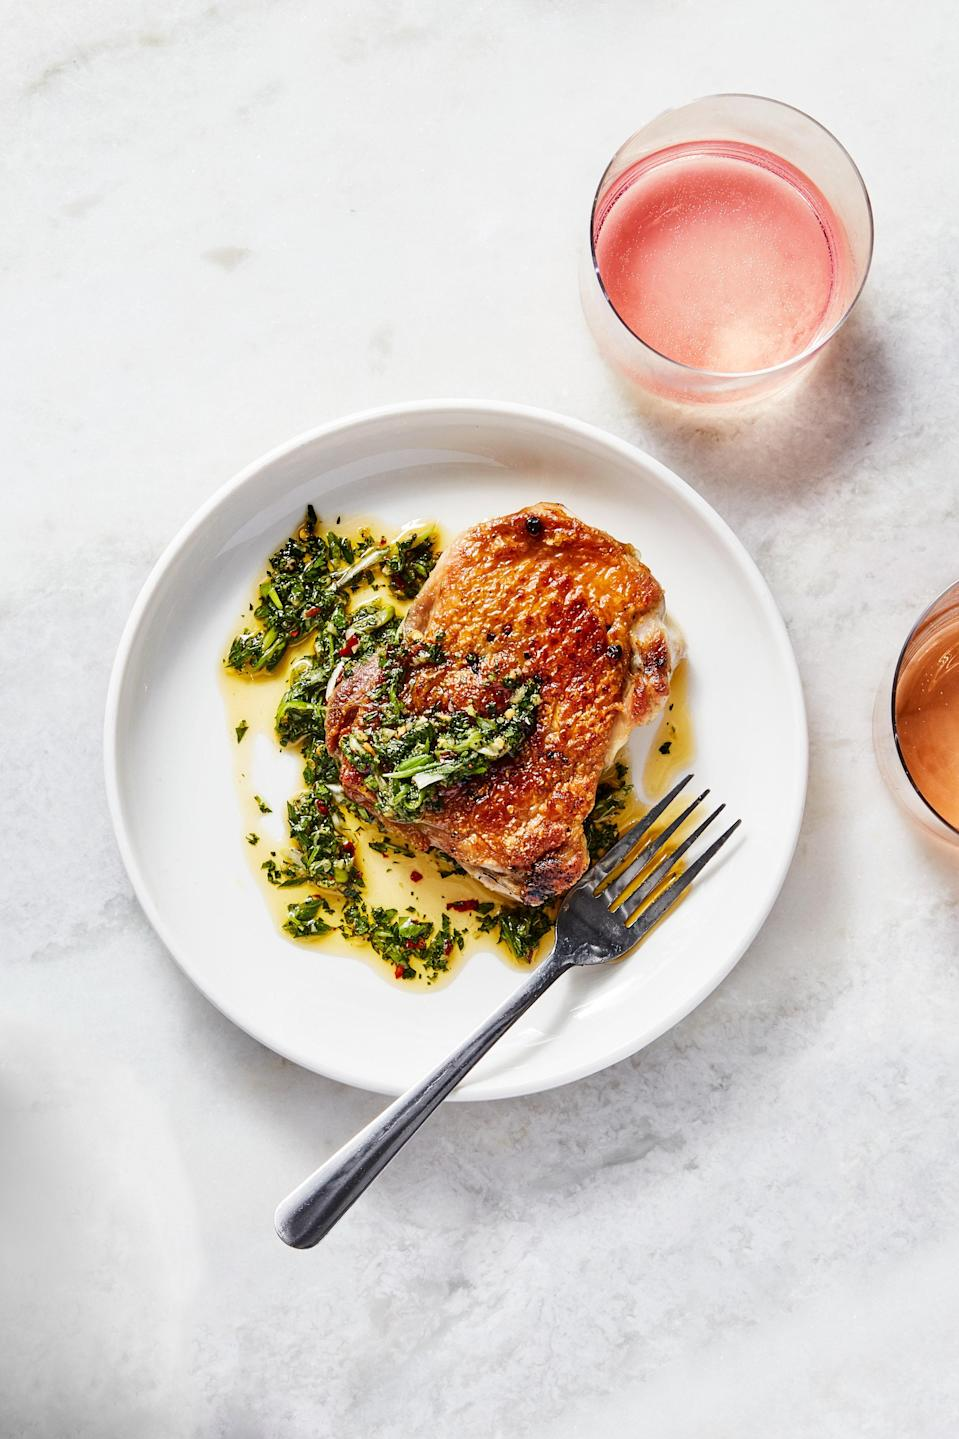 """A brick's an unusual kitchen tool, but in this recipe it fulfills a very important task: Cooking boneless (but skin on!) chicken thighs underneath it renders the skin as crisp as can be, while the interior stays super-juicy. <a href=""""https://www.epicurious.com/recipes/food/views/chicken-under-a-brick-in-a-hurry?mbid=synd_yahoo_rss"""" rel=""""nofollow noopener"""" target=""""_blank"""" data-ylk=""""slk:See recipe."""" class=""""link rapid-noclick-resp"""">See recipe.</a>"""